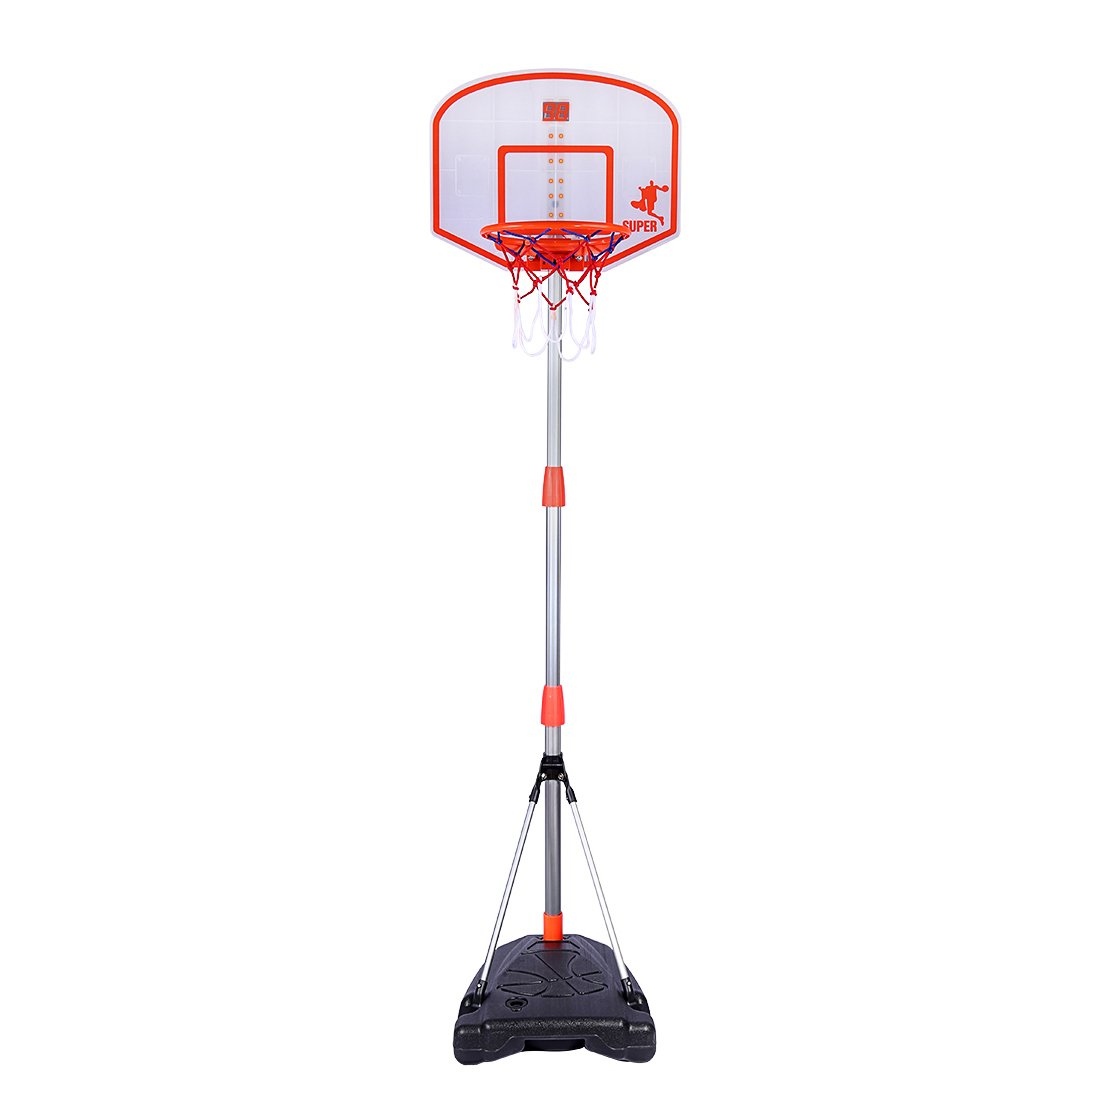 FenglinTech 38-67inch Height Adjustable Children Basketball Portable Hoops and Goals with Scoring Device